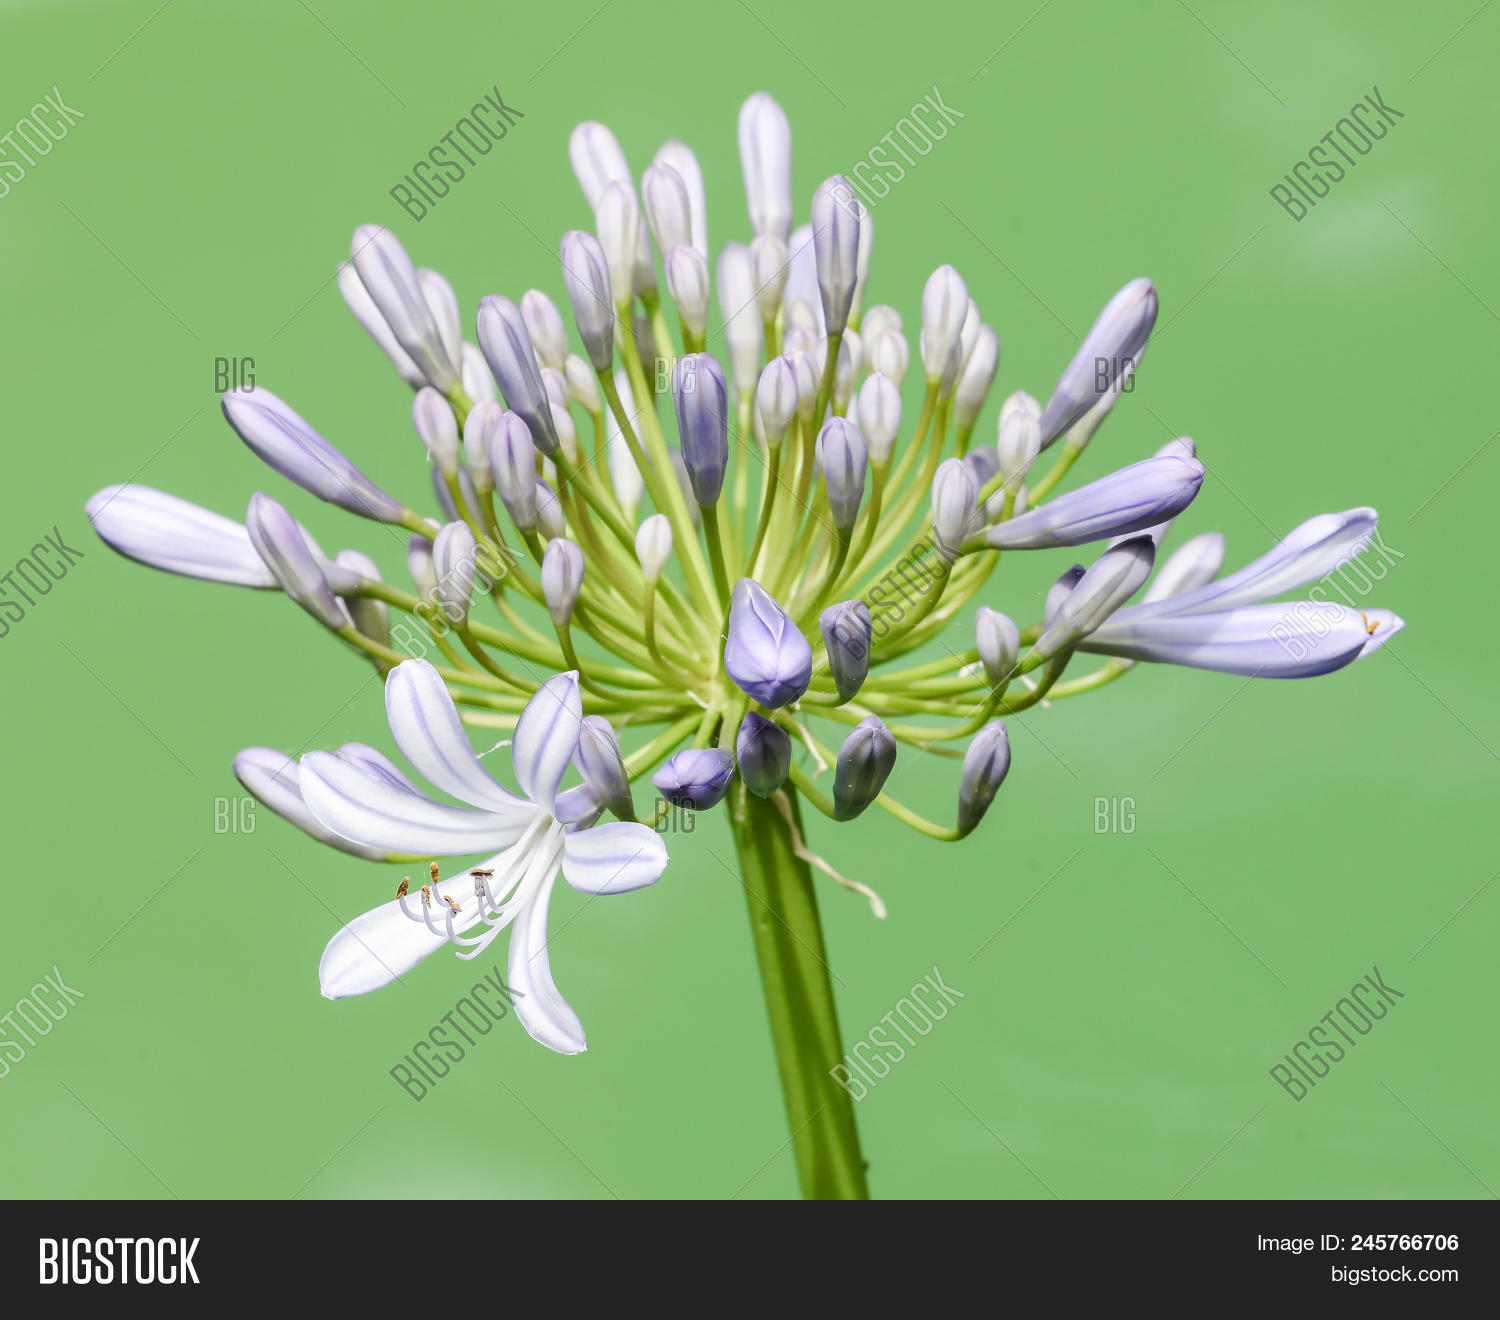 Lily nile flower image photo free trial bigstock a lily of the nile flower growing with the water at the background izmirmasajfo